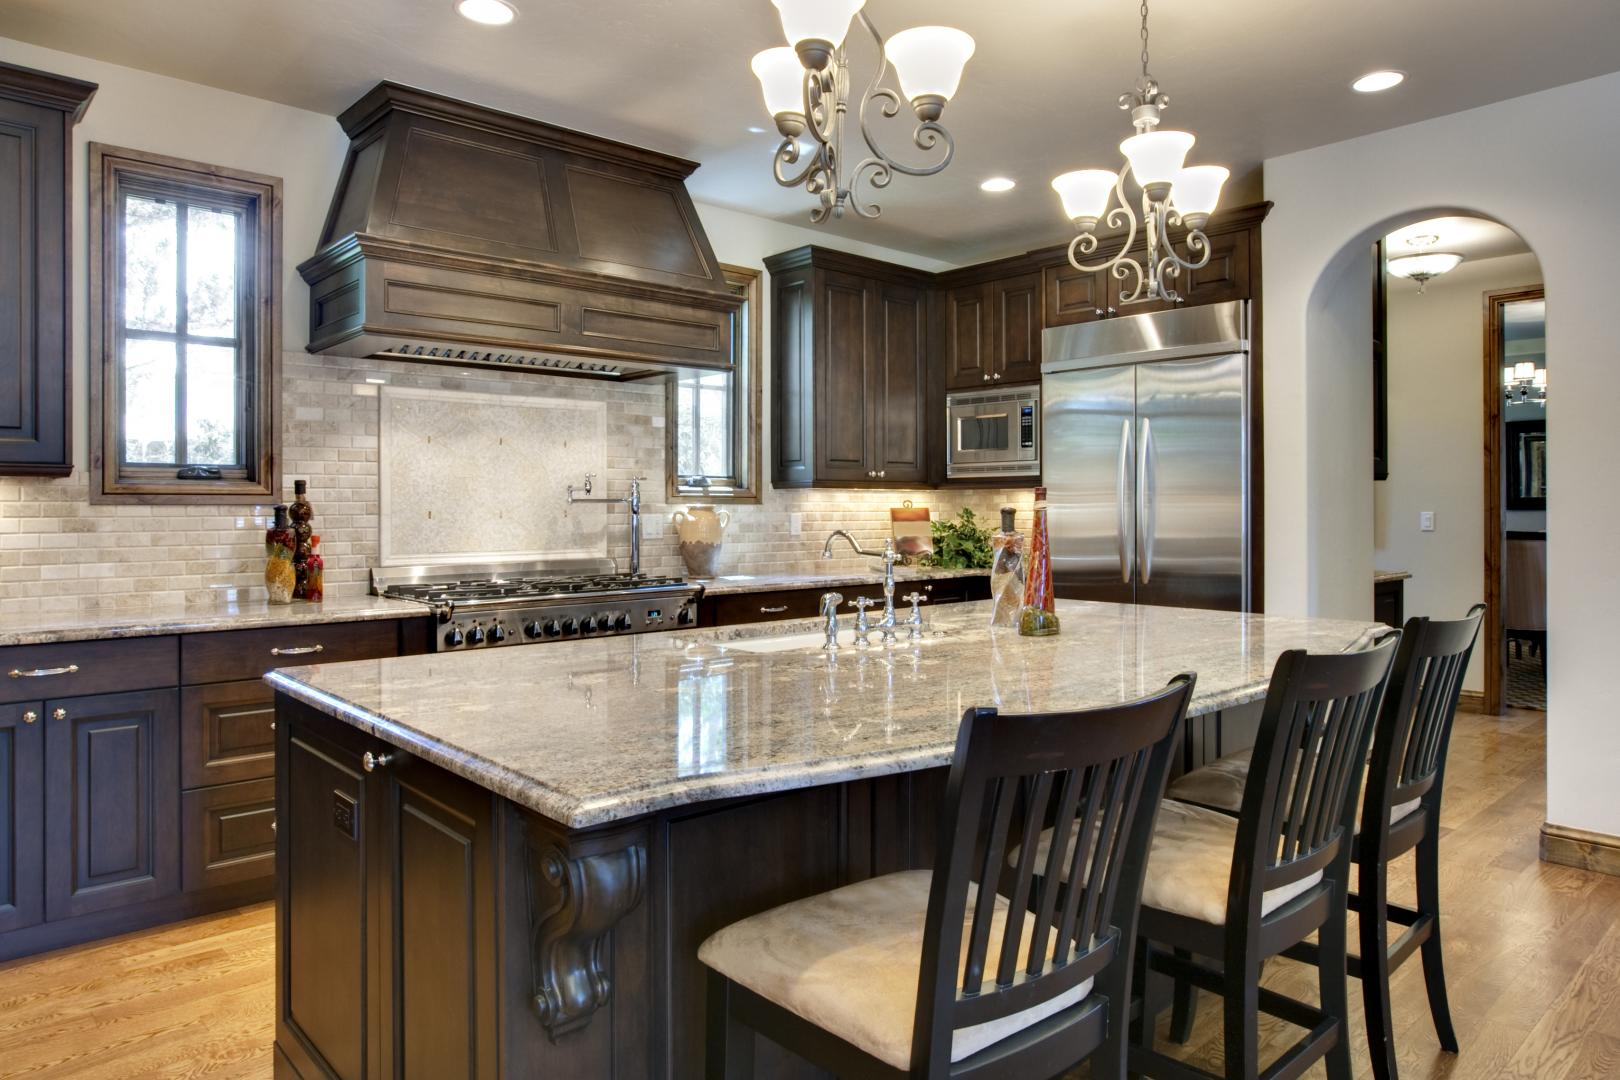 Custom kitchen design conception, cabinetry sale and design, custom ...